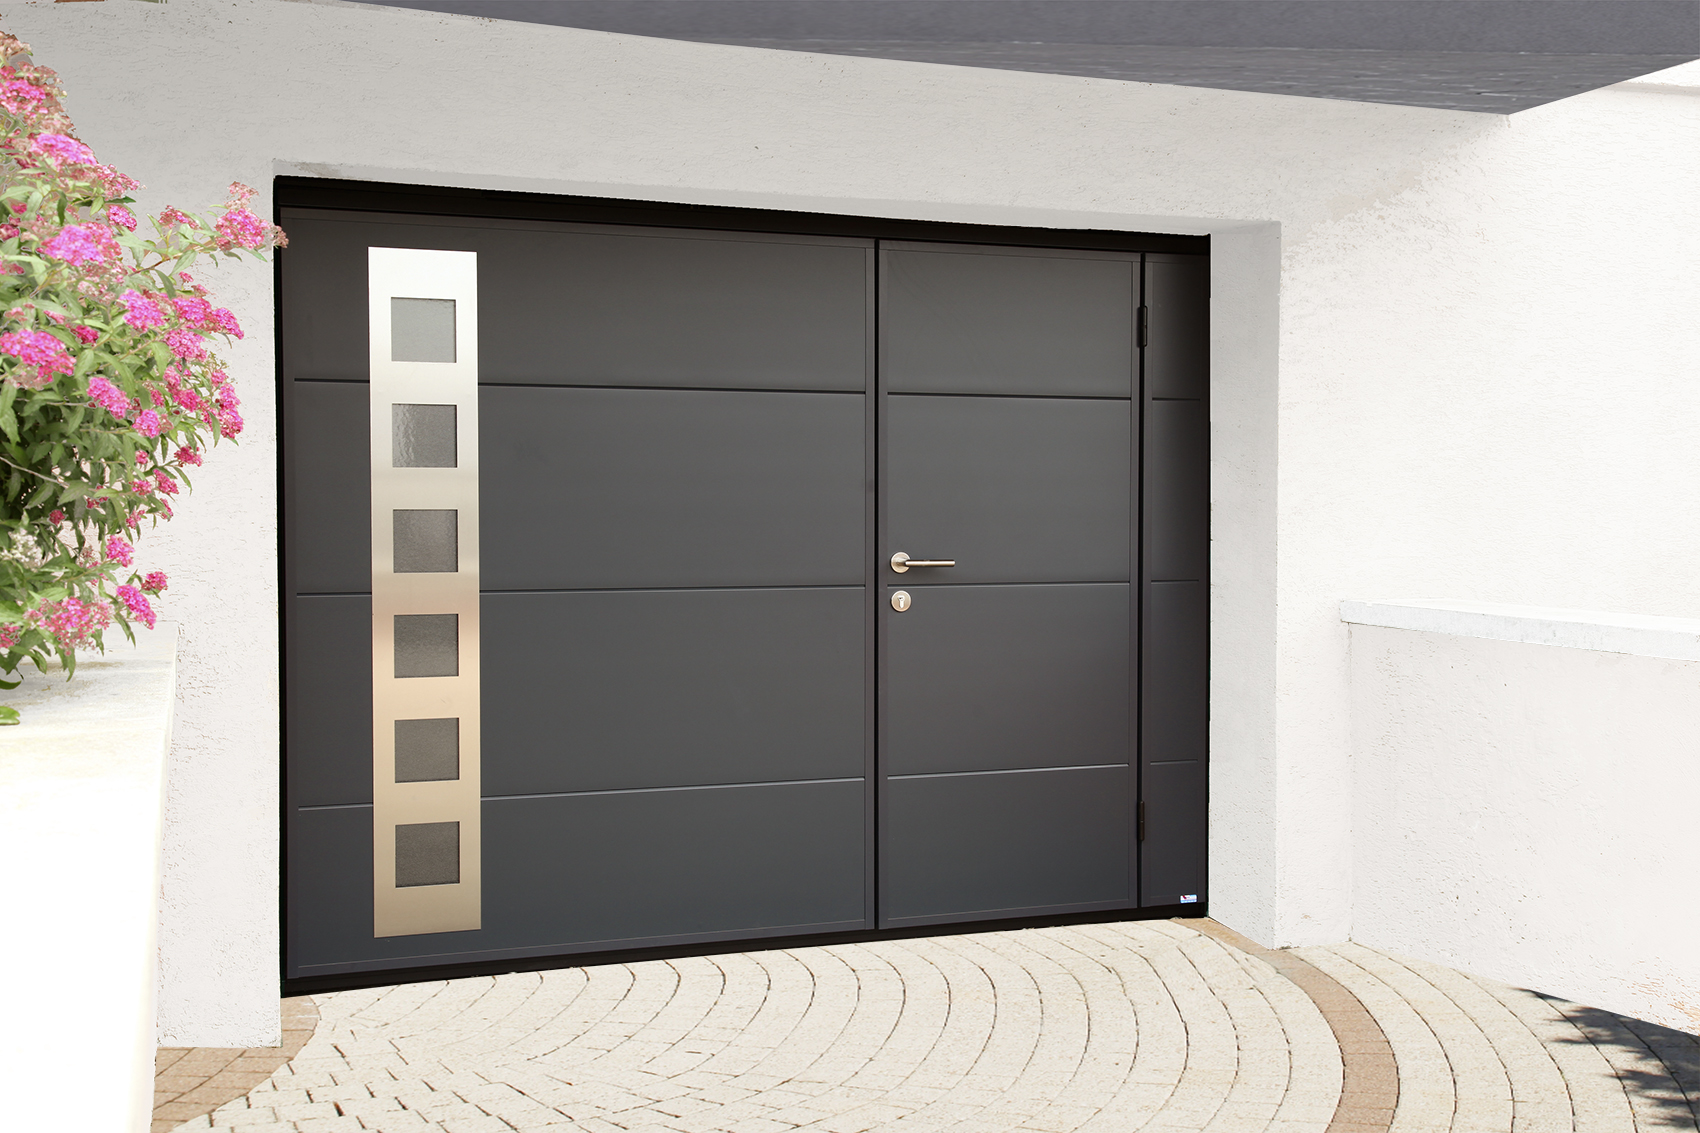 Pose de porte de garage sur mesure motoris e ou manuelle for Porte garage sectionnelle avec portillon